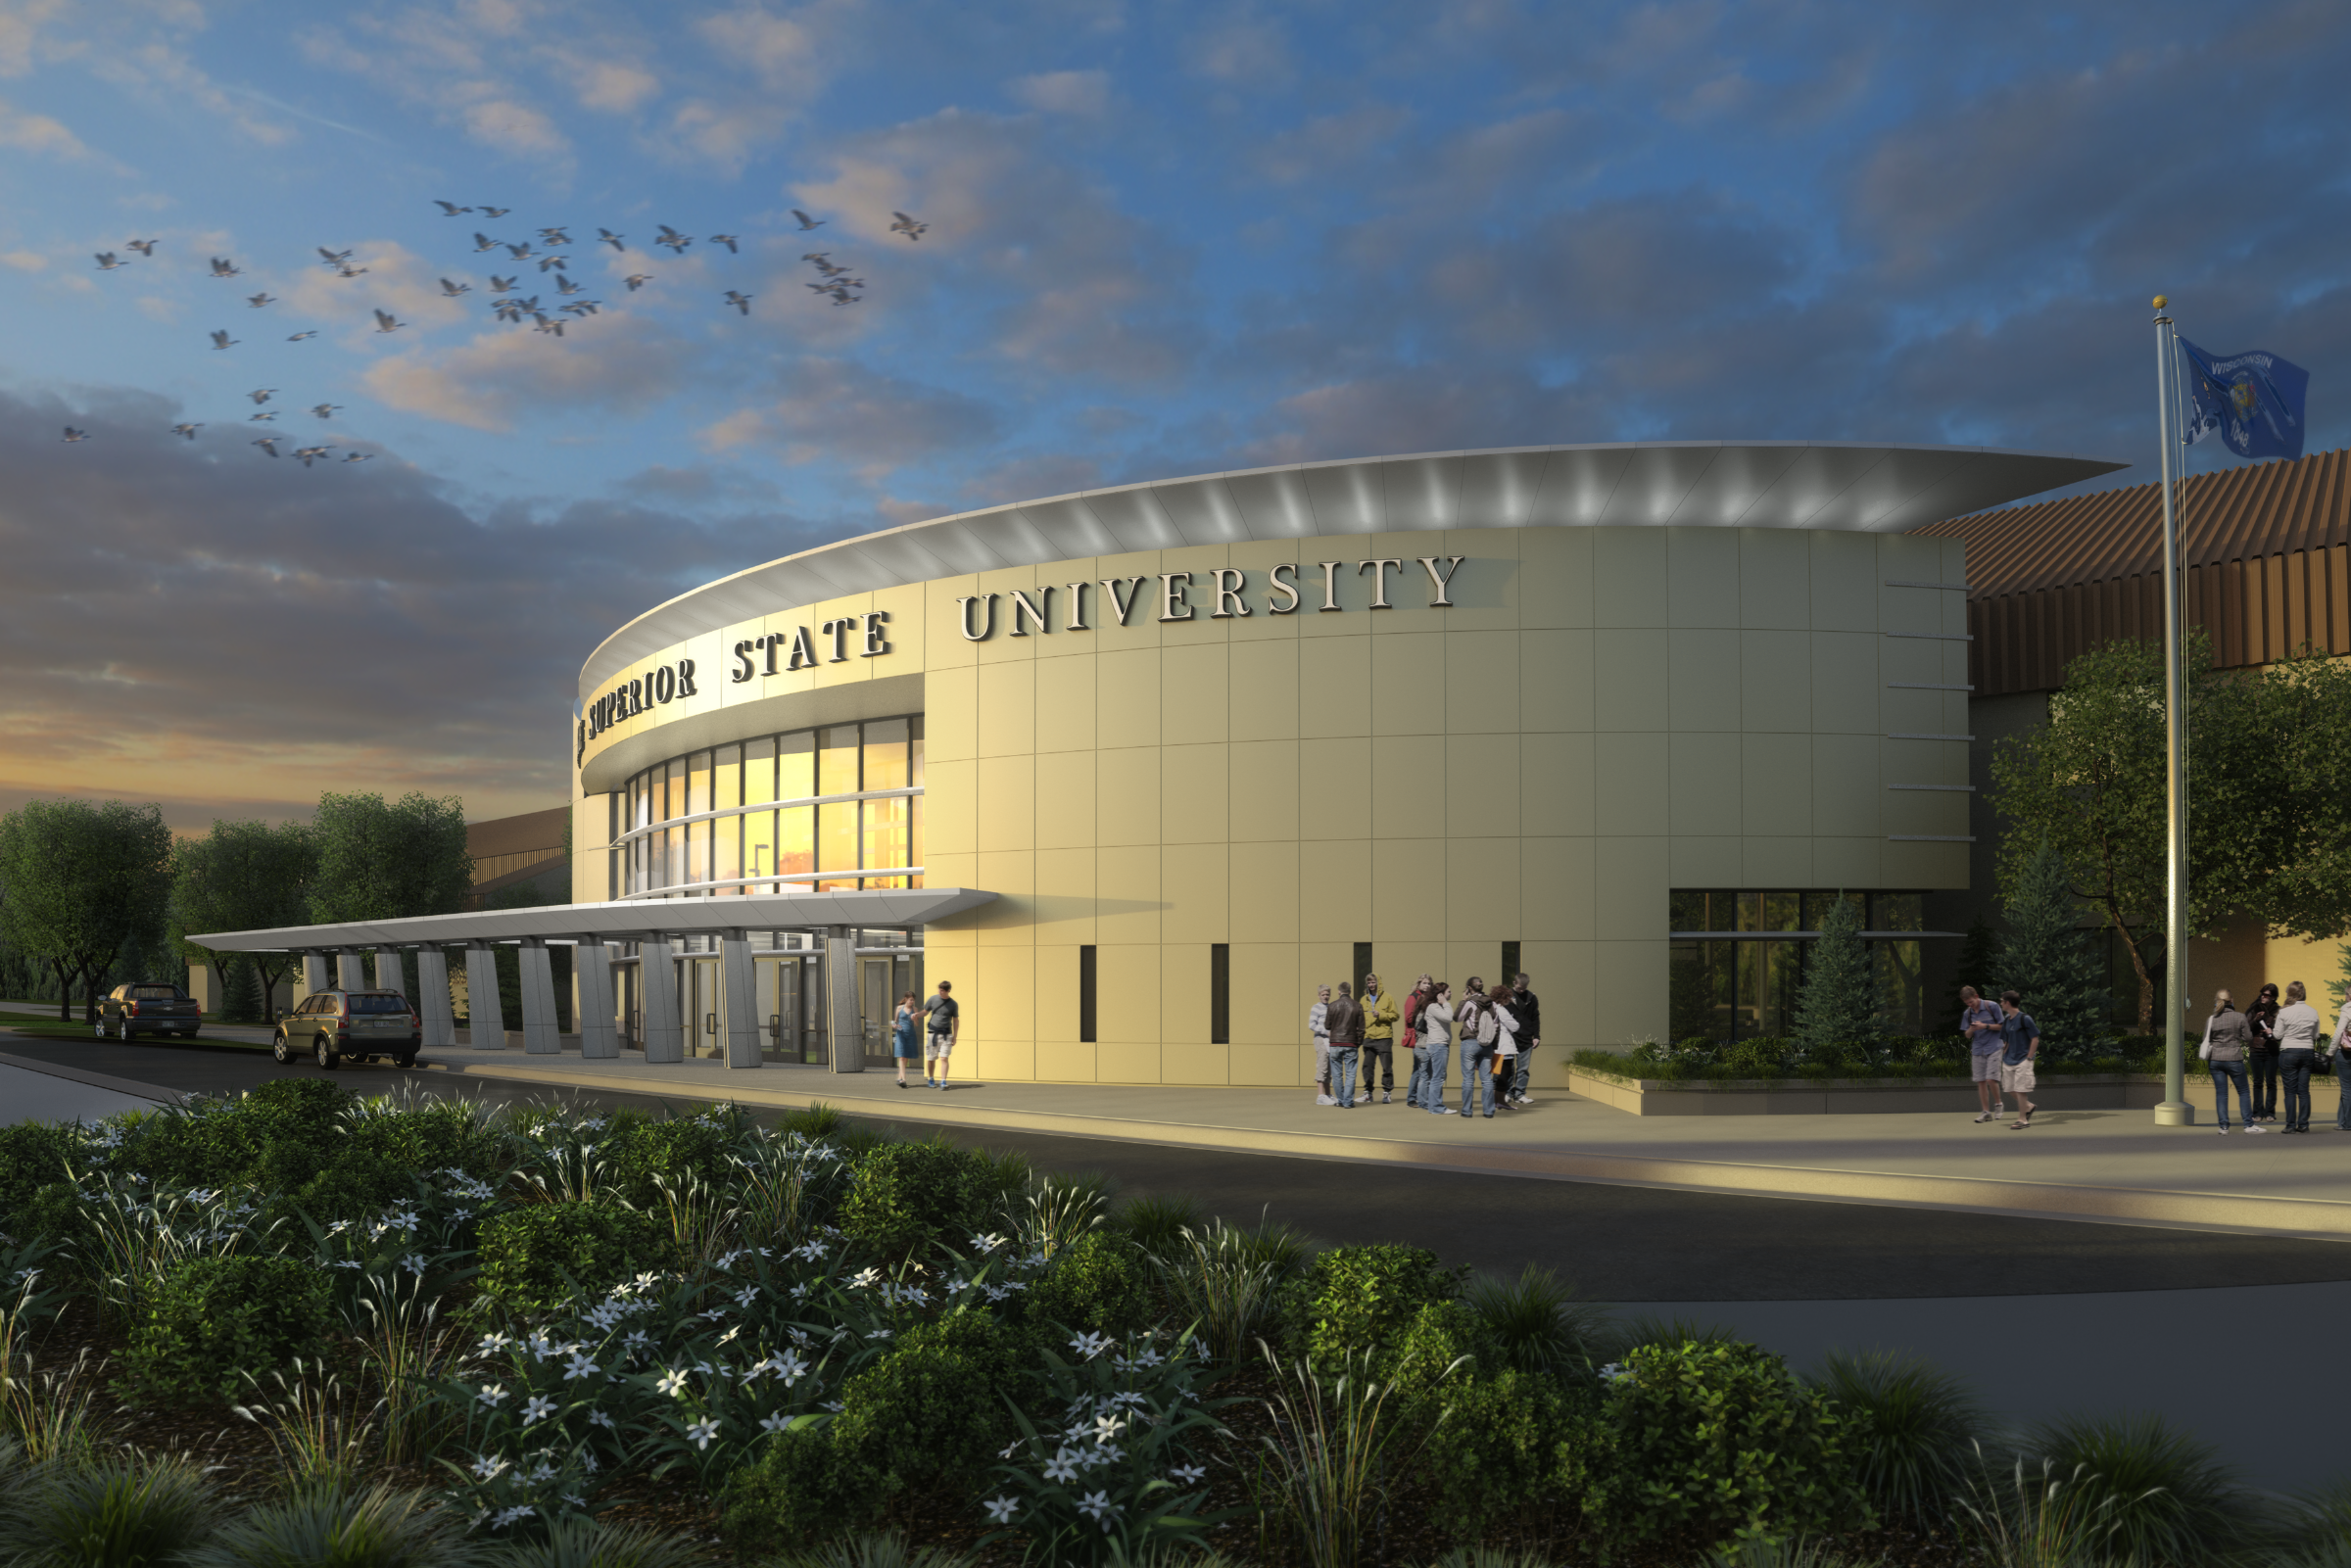 2019__LSSU_EXTERIOR_2016 Update_04_0004_CROPPED-01_2400px.png